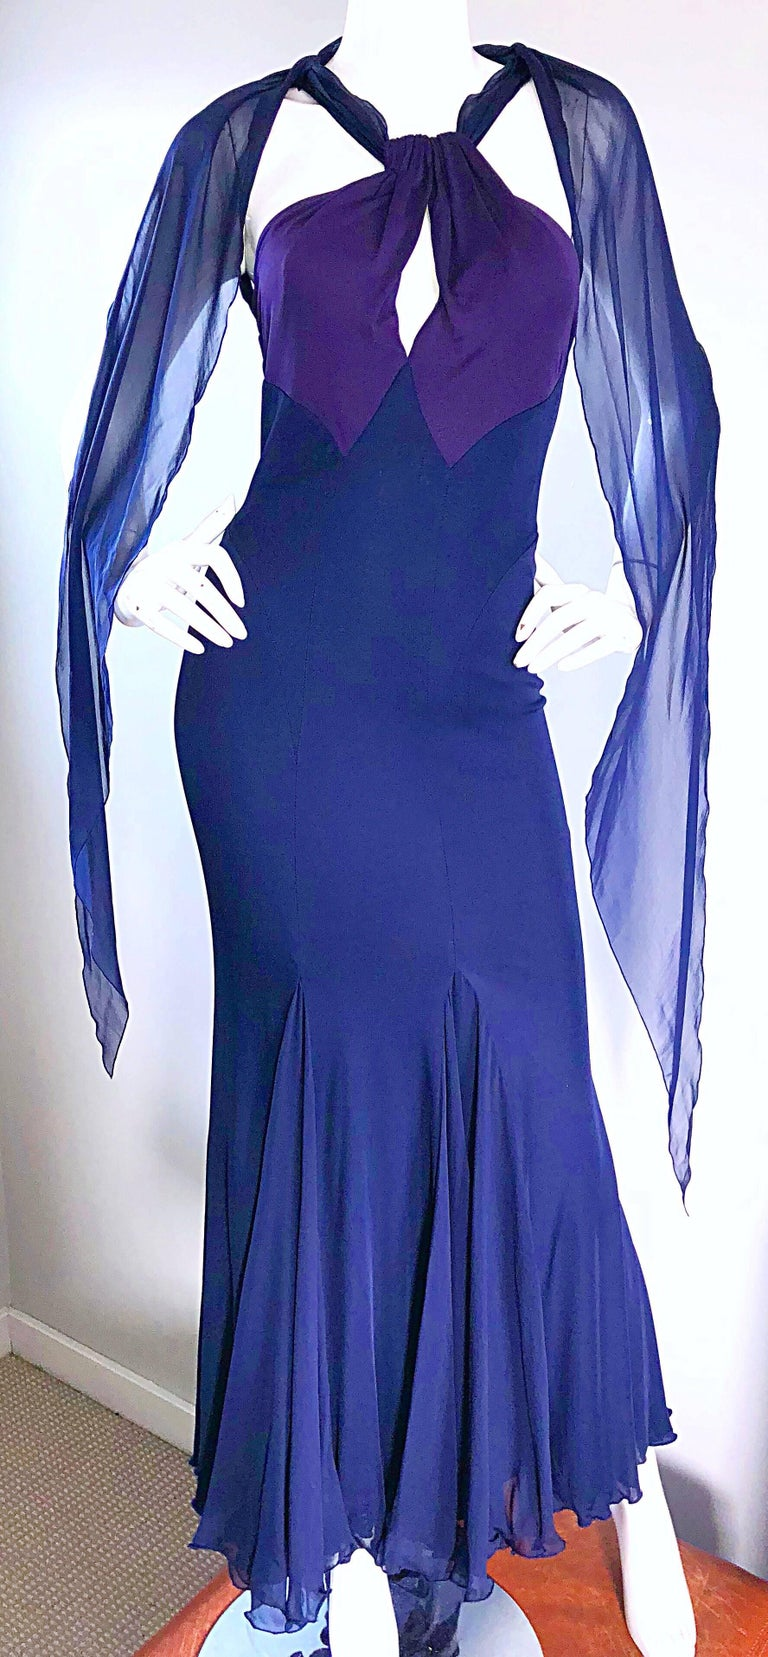 Gorgeous 1990s / 90s BILL BLASS original sample grecian inspired color block evening dress! Features a slinky silk jersey that stretches to fit. Purple bodice, with keyhole cut-out at center bust, and navy skirt. Navy blue chiffon ties at the back